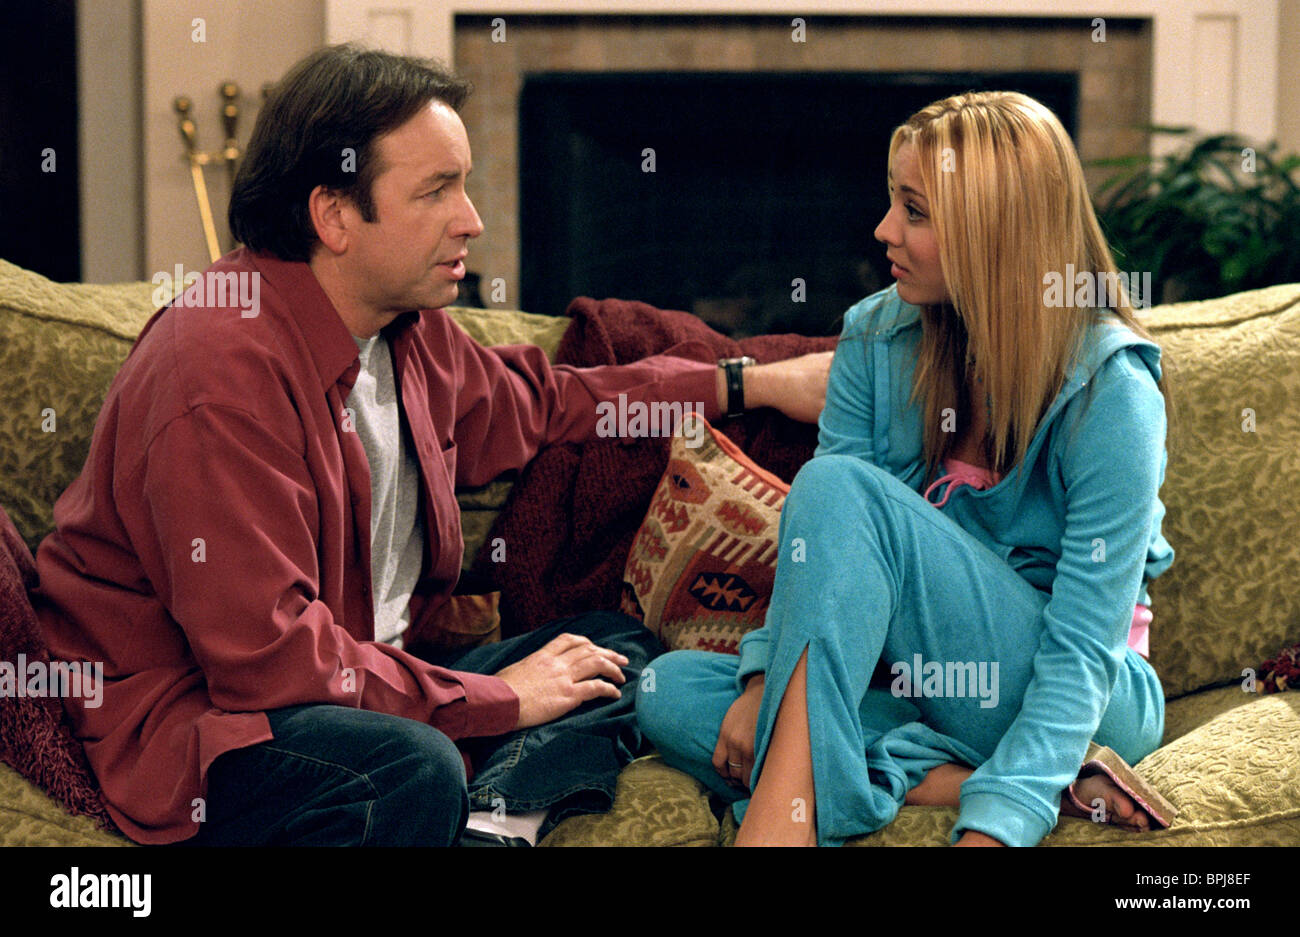 rules for dating teenage daughter Rip - 2003 show: 8 simple rules for dating my teenage daughter (later known as 8 simple rules) - season 1 episode 23 - queen bees and king bees song: the w.